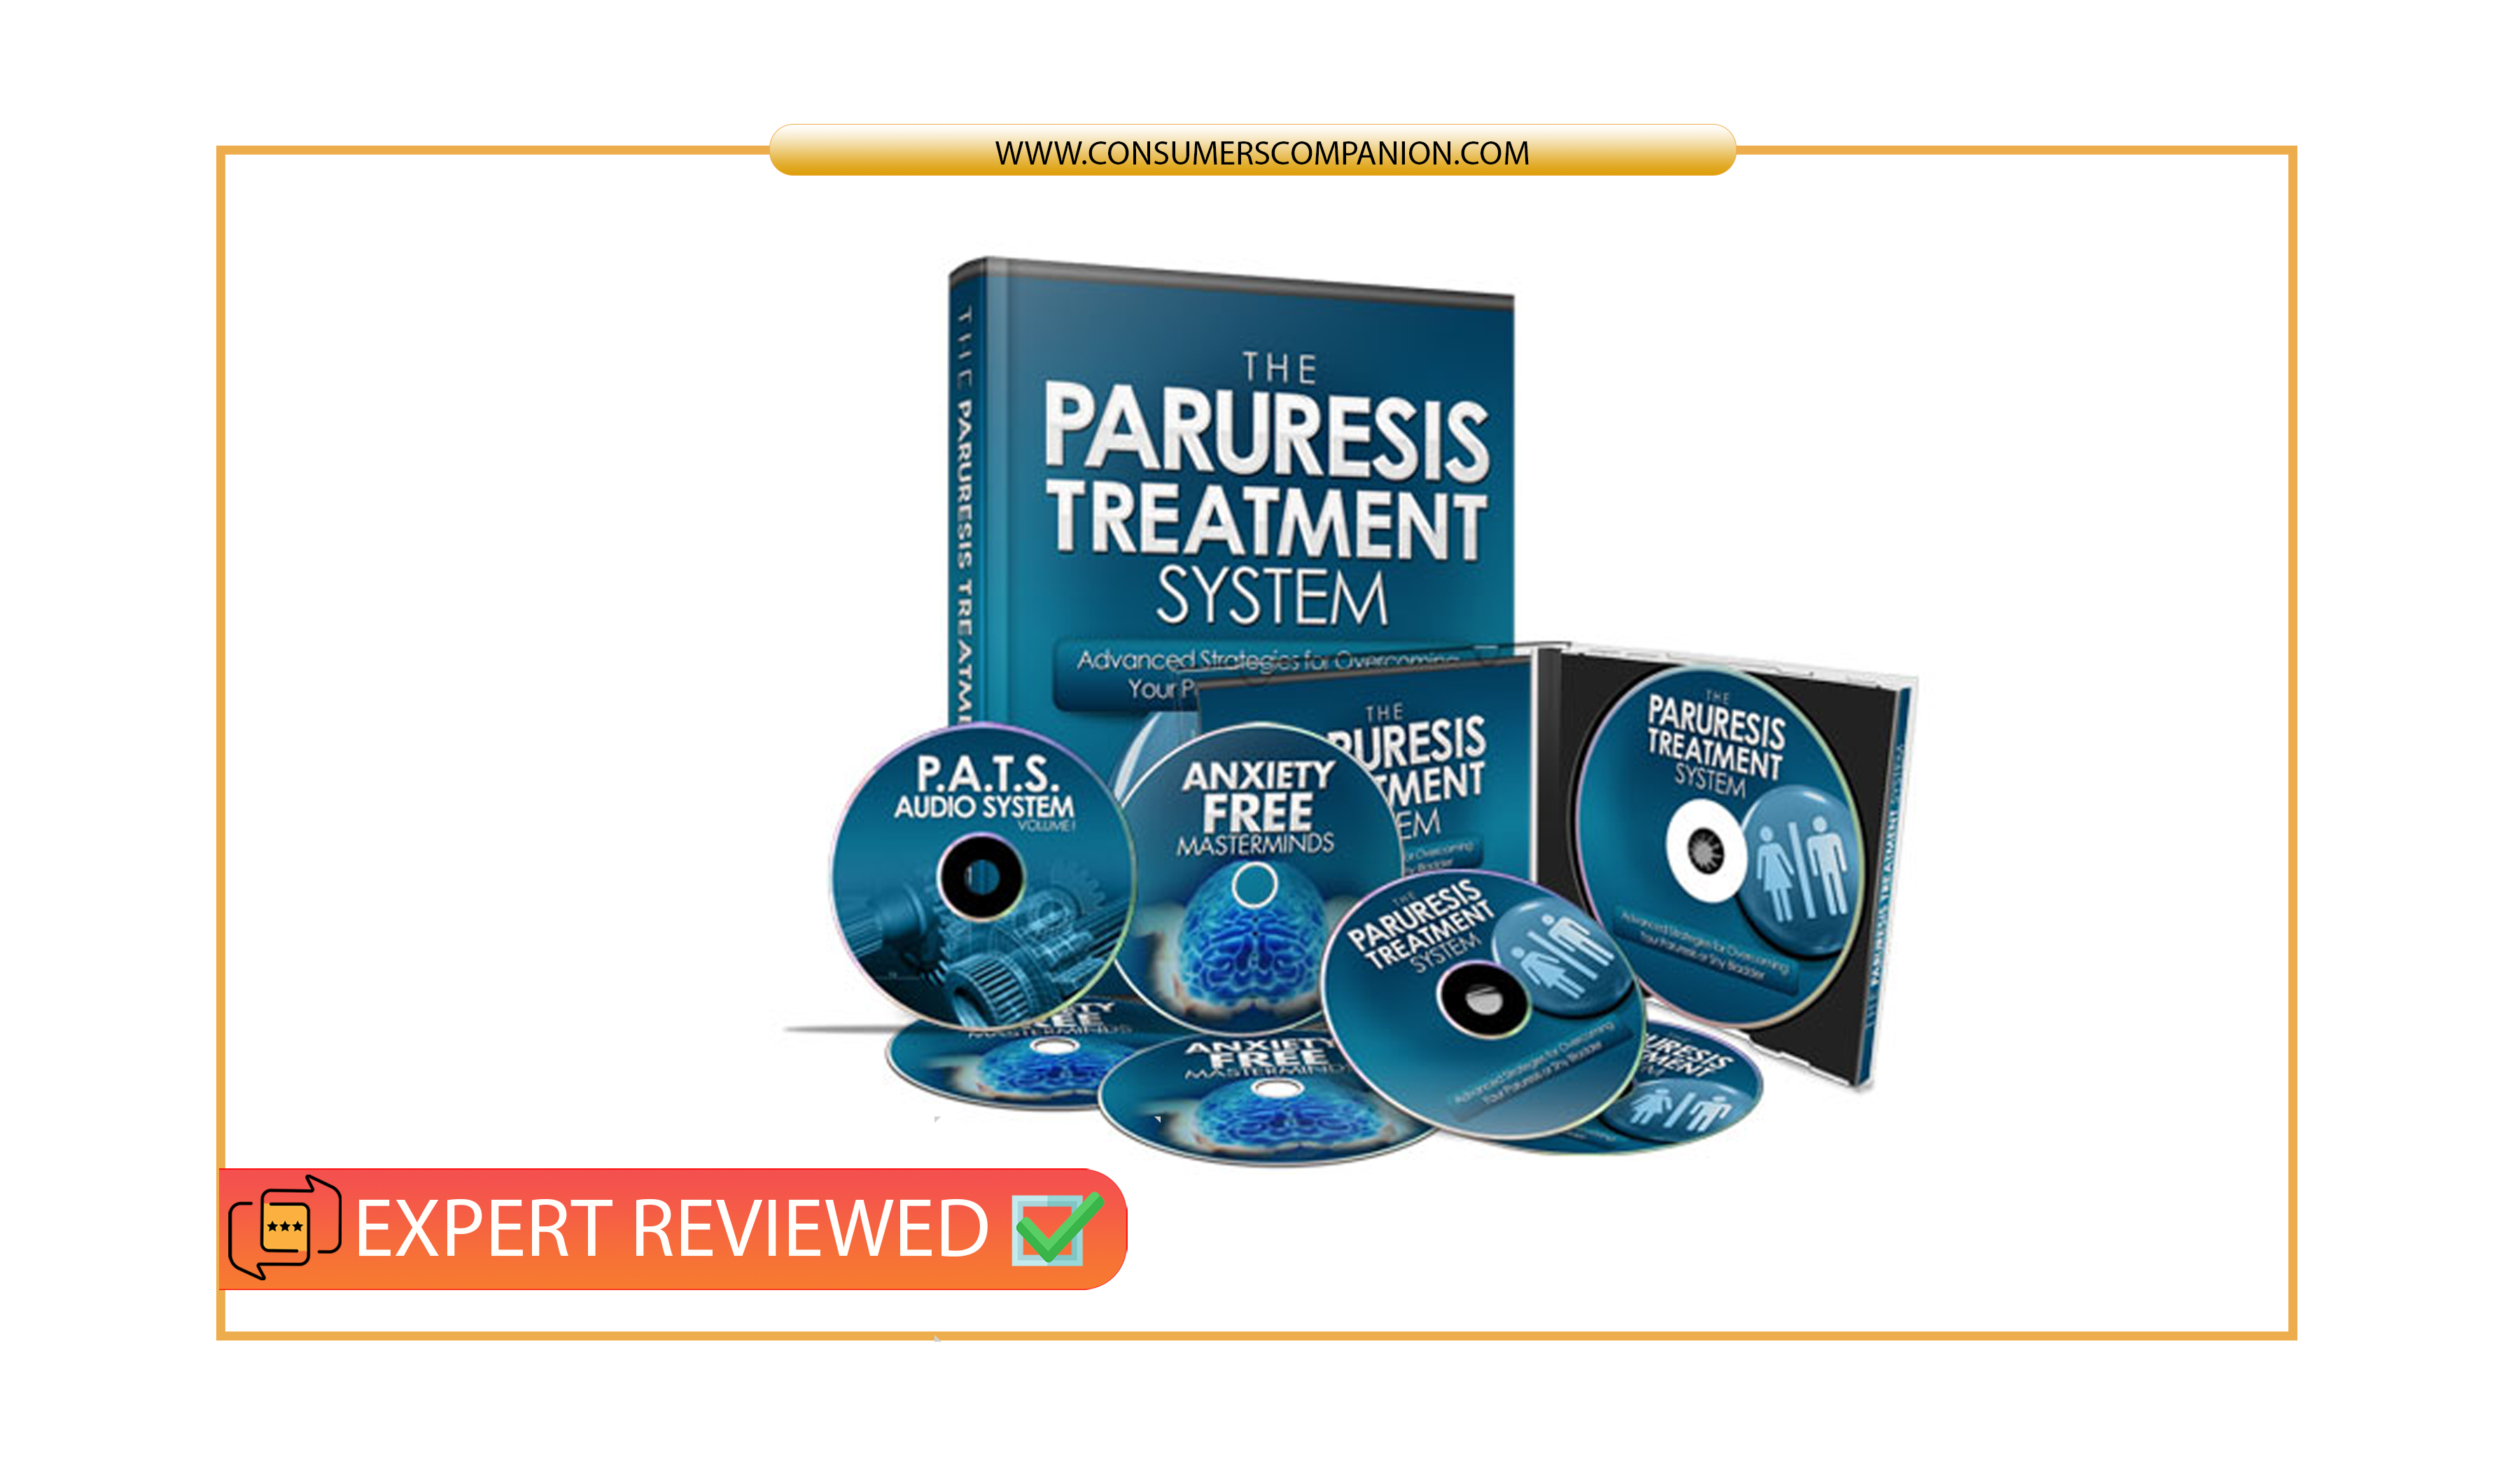 paruresis treatment system reviews